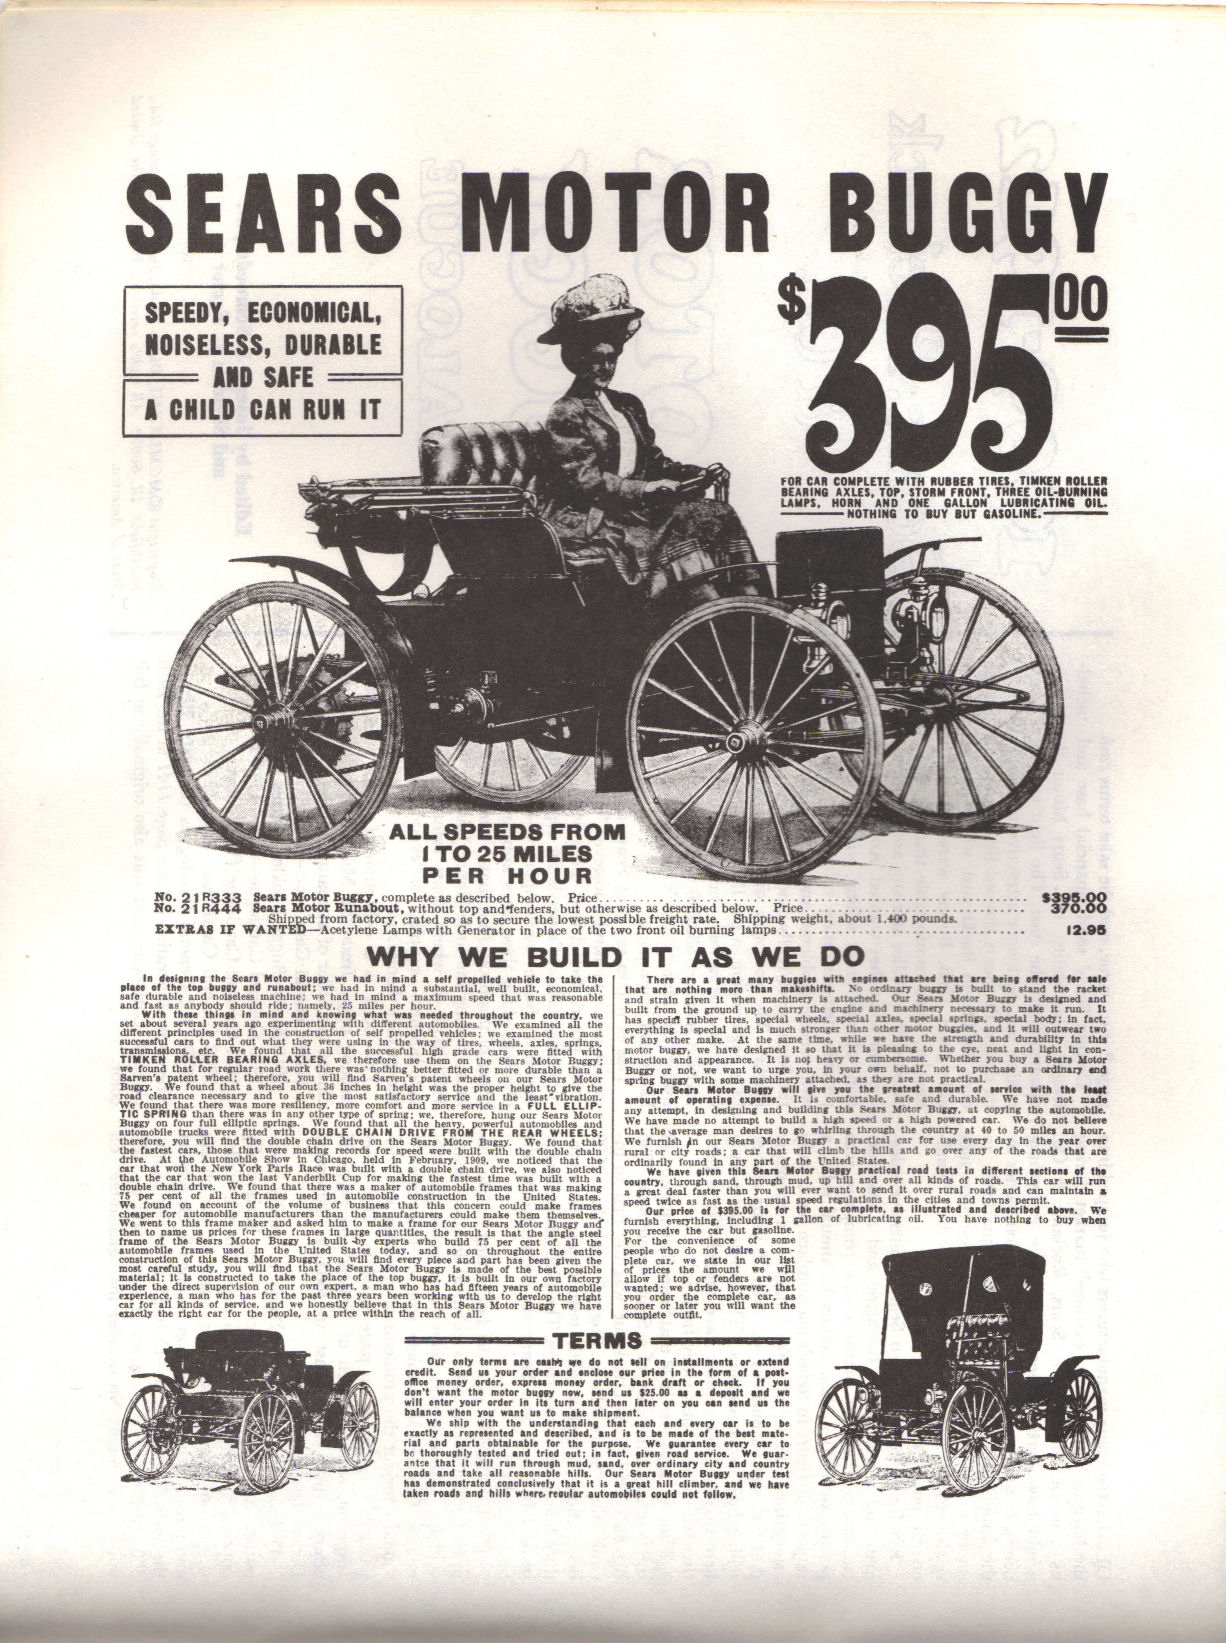 bff24c1740 This is an advertisement for a Sears from the 1909 Fall Catalogue Click on  the picture to see the full size.